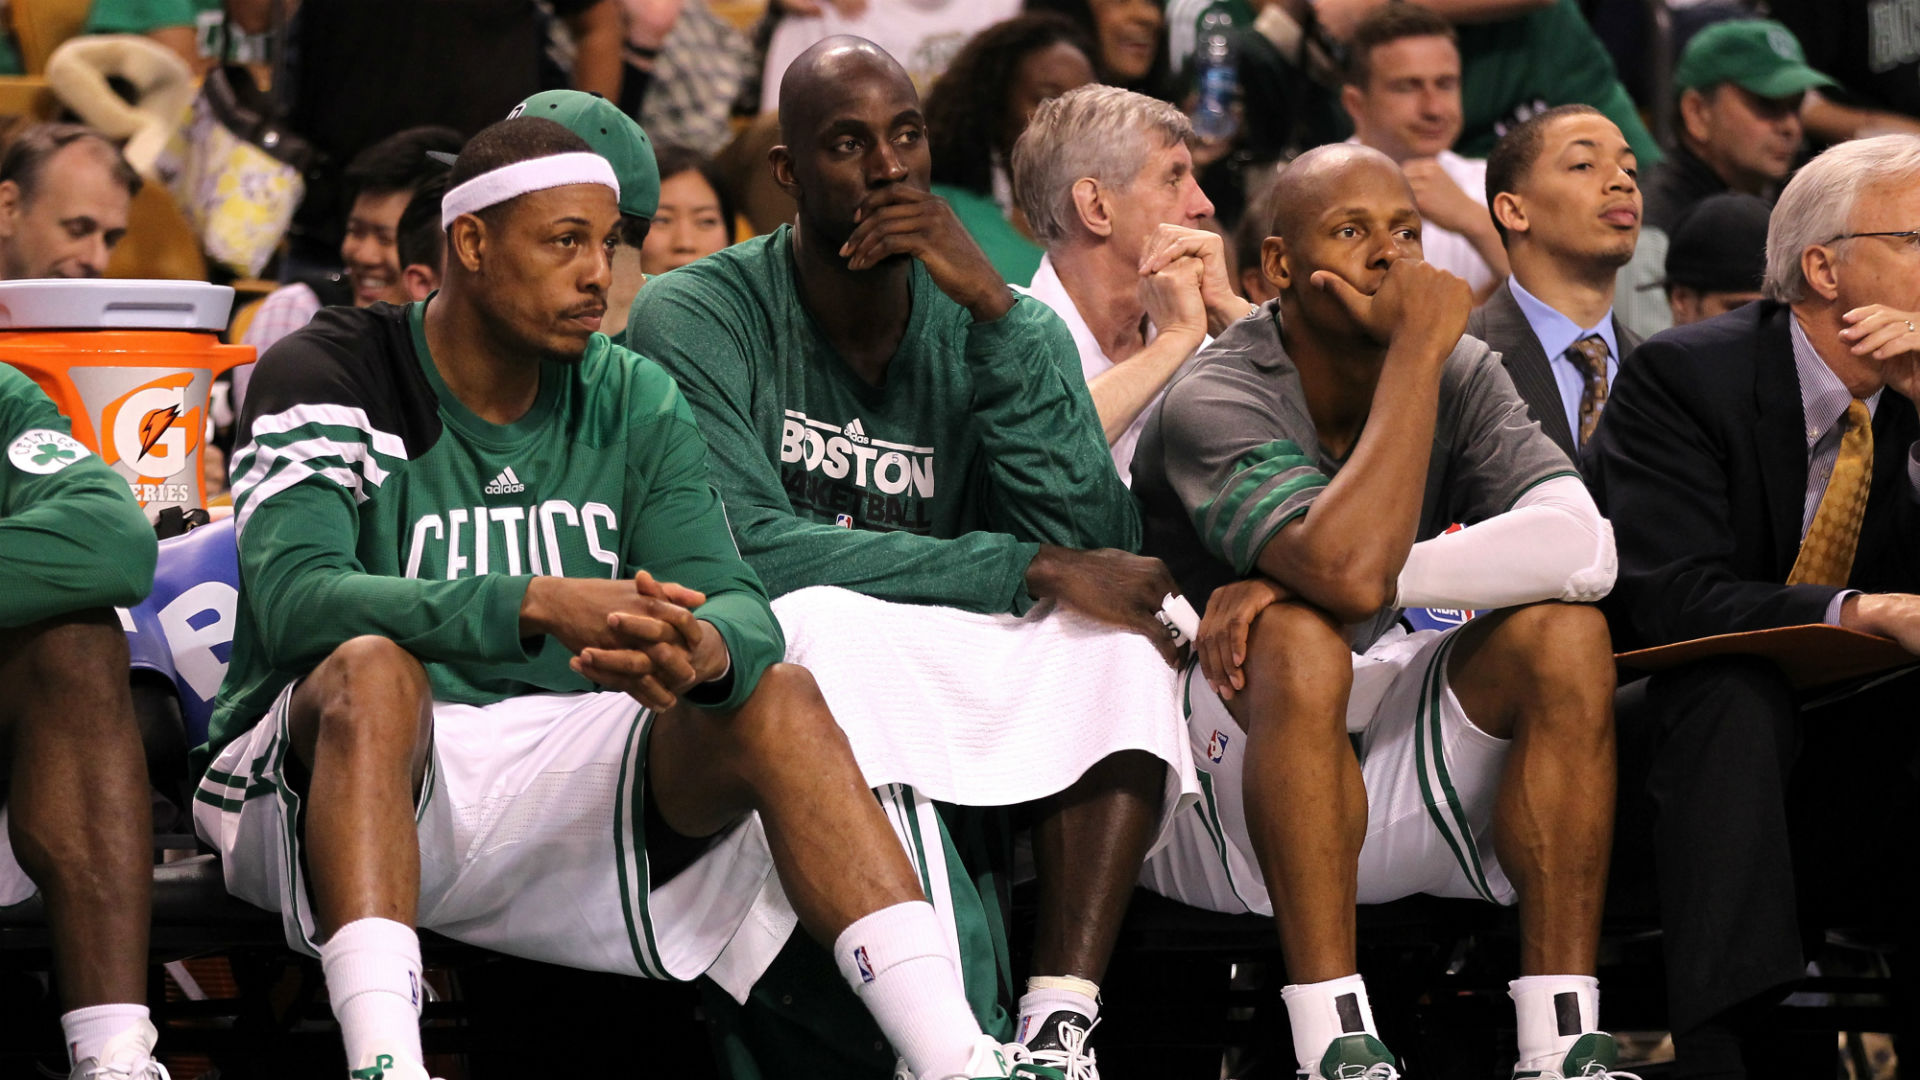 Paul Pierce Kevin Garnett and Ray Allen with Celitcs